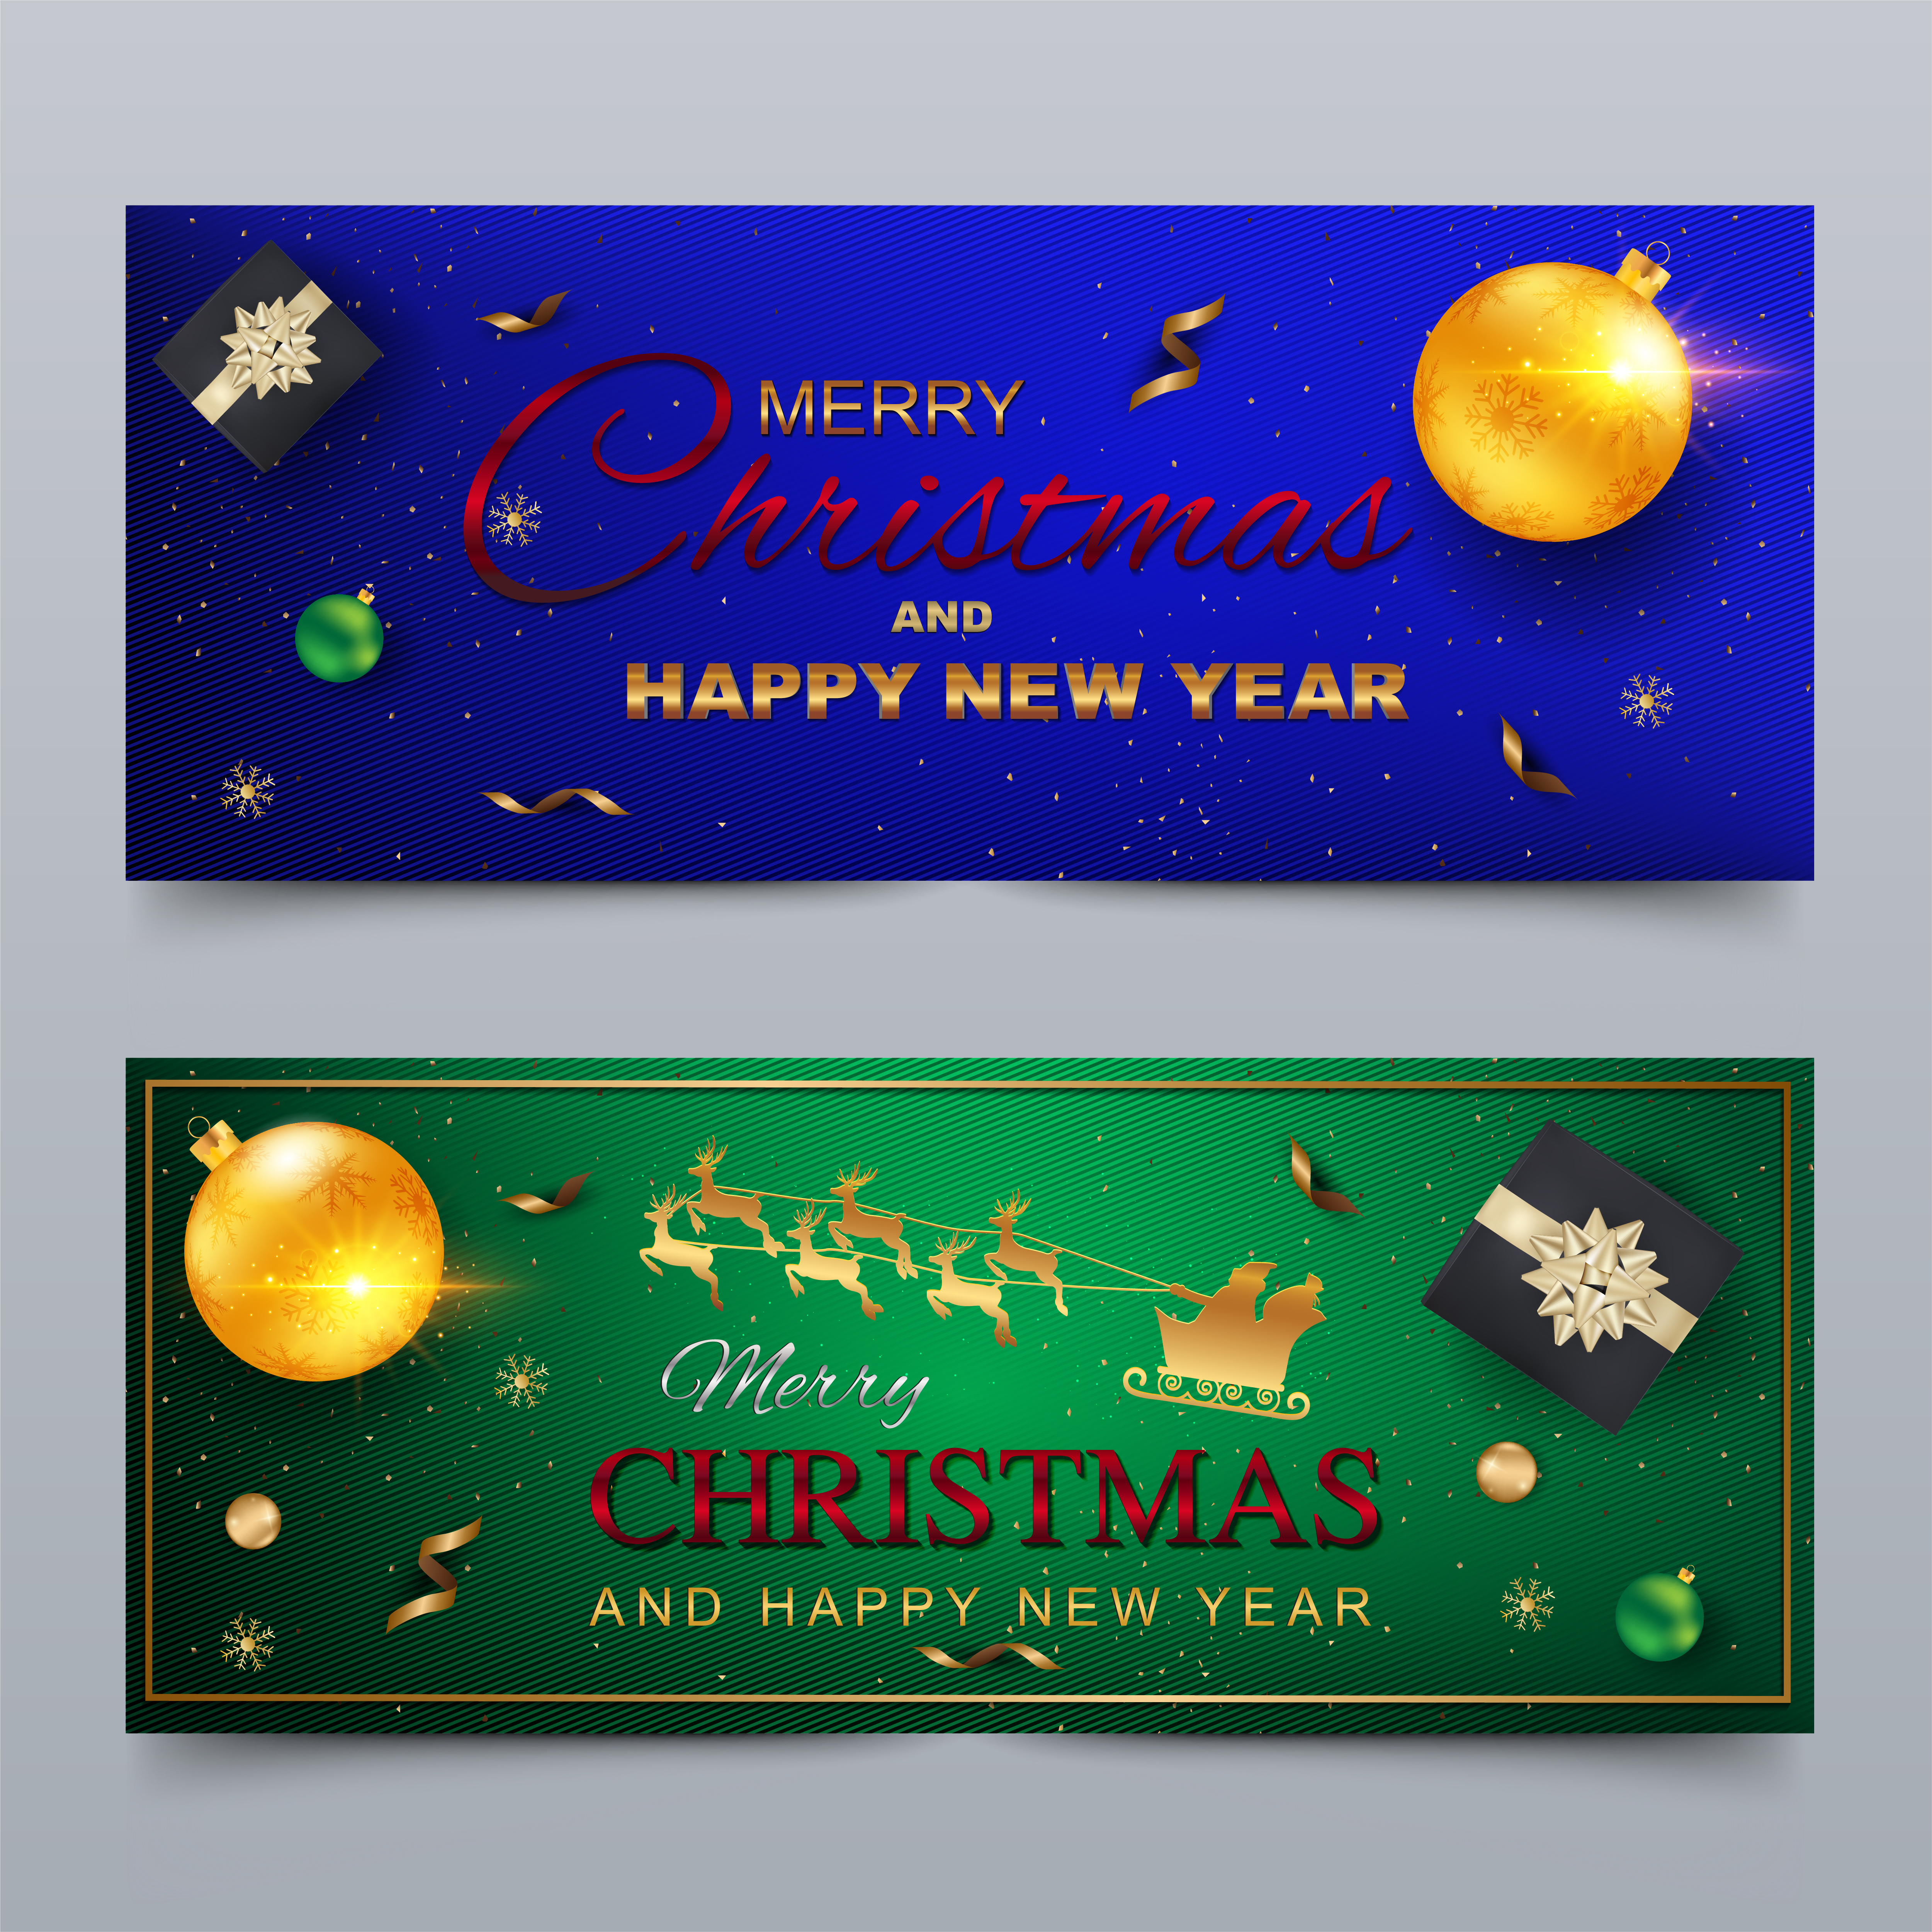 merry christmas and happy new year banner greeting card design download free vectors clipart graphics vector art vecteezy